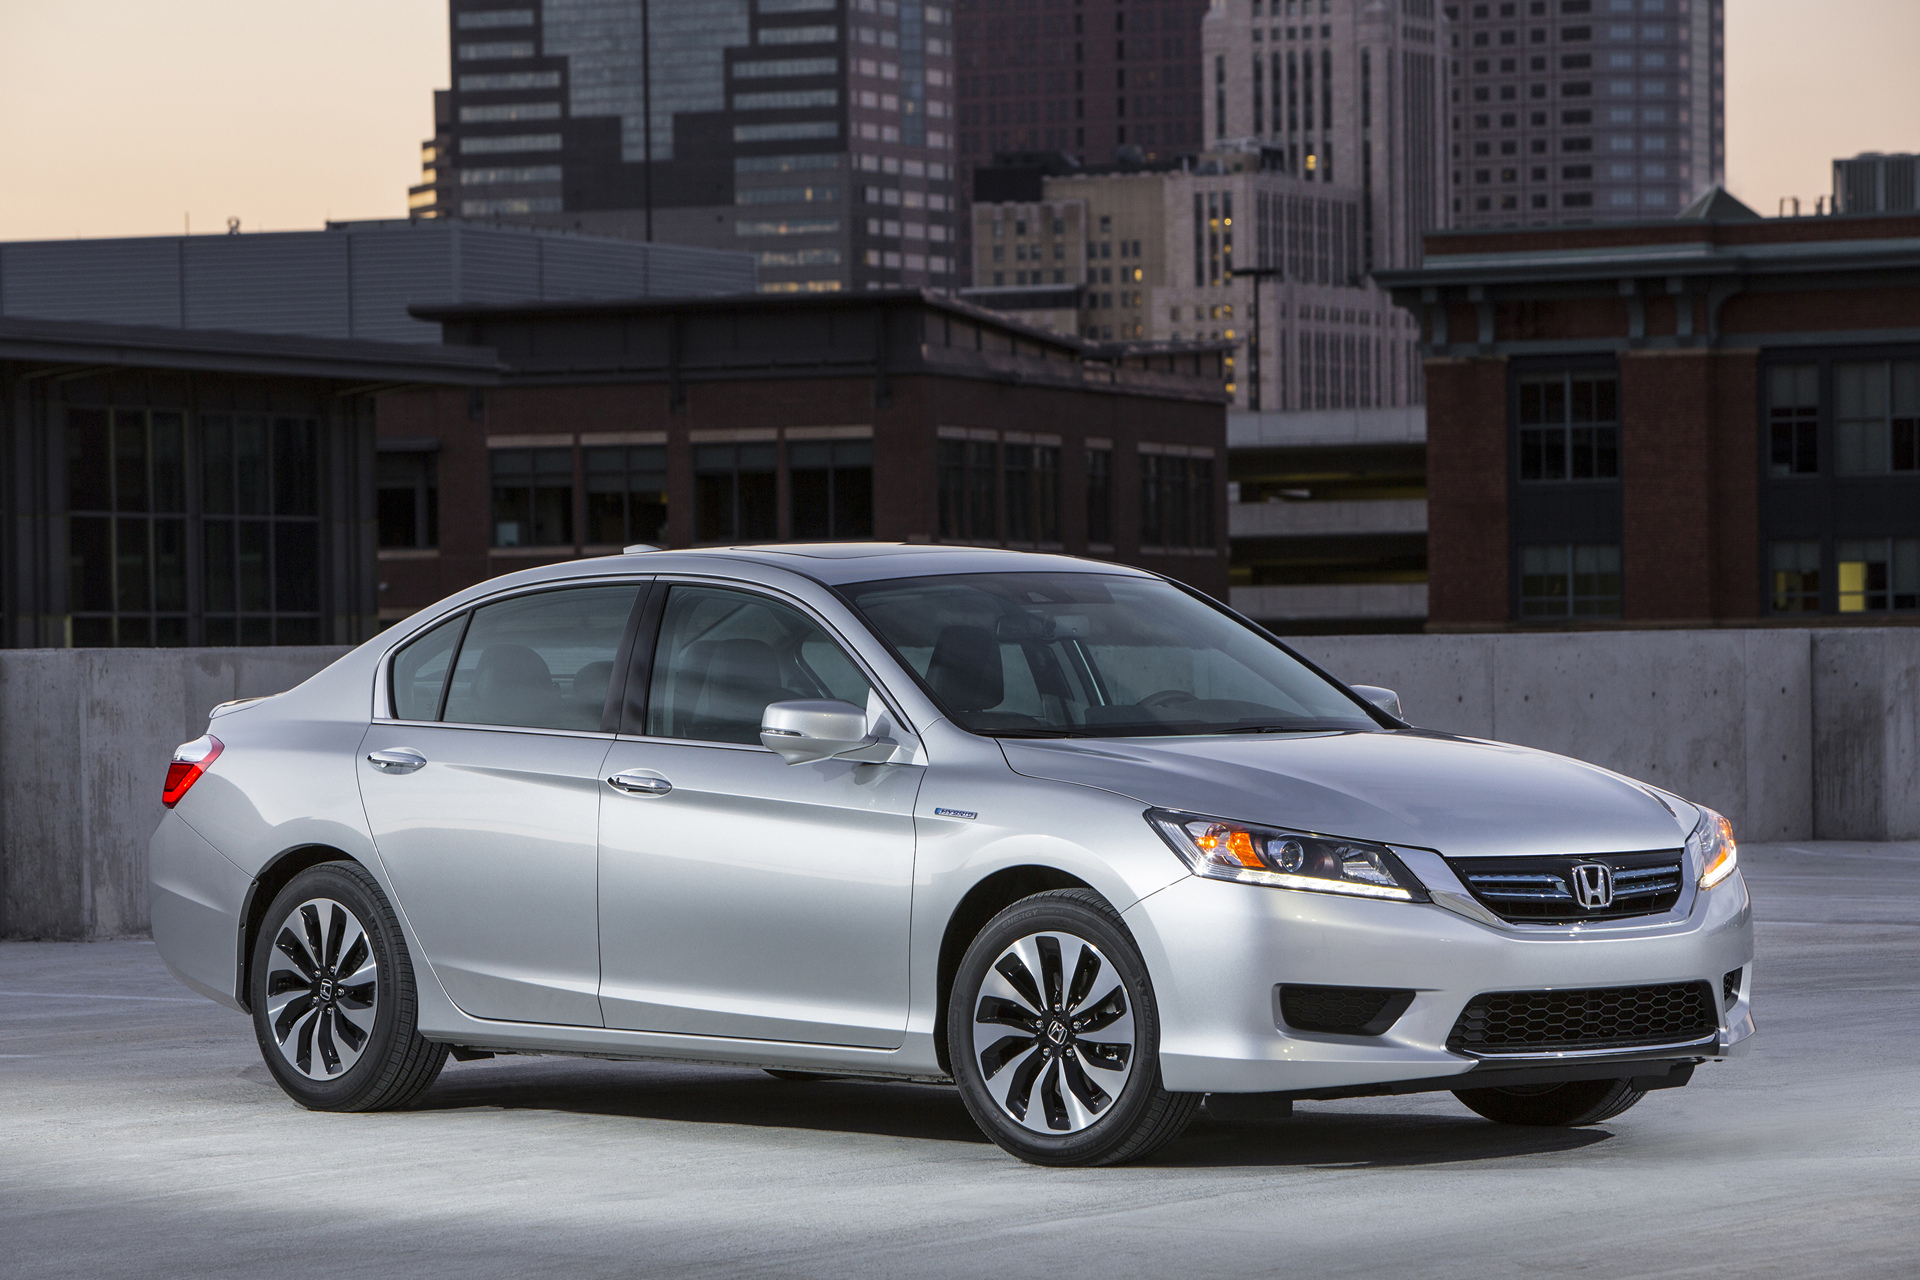 2015 Accord Hybrid 9th Generation © Honda Motor Co., Ltd.